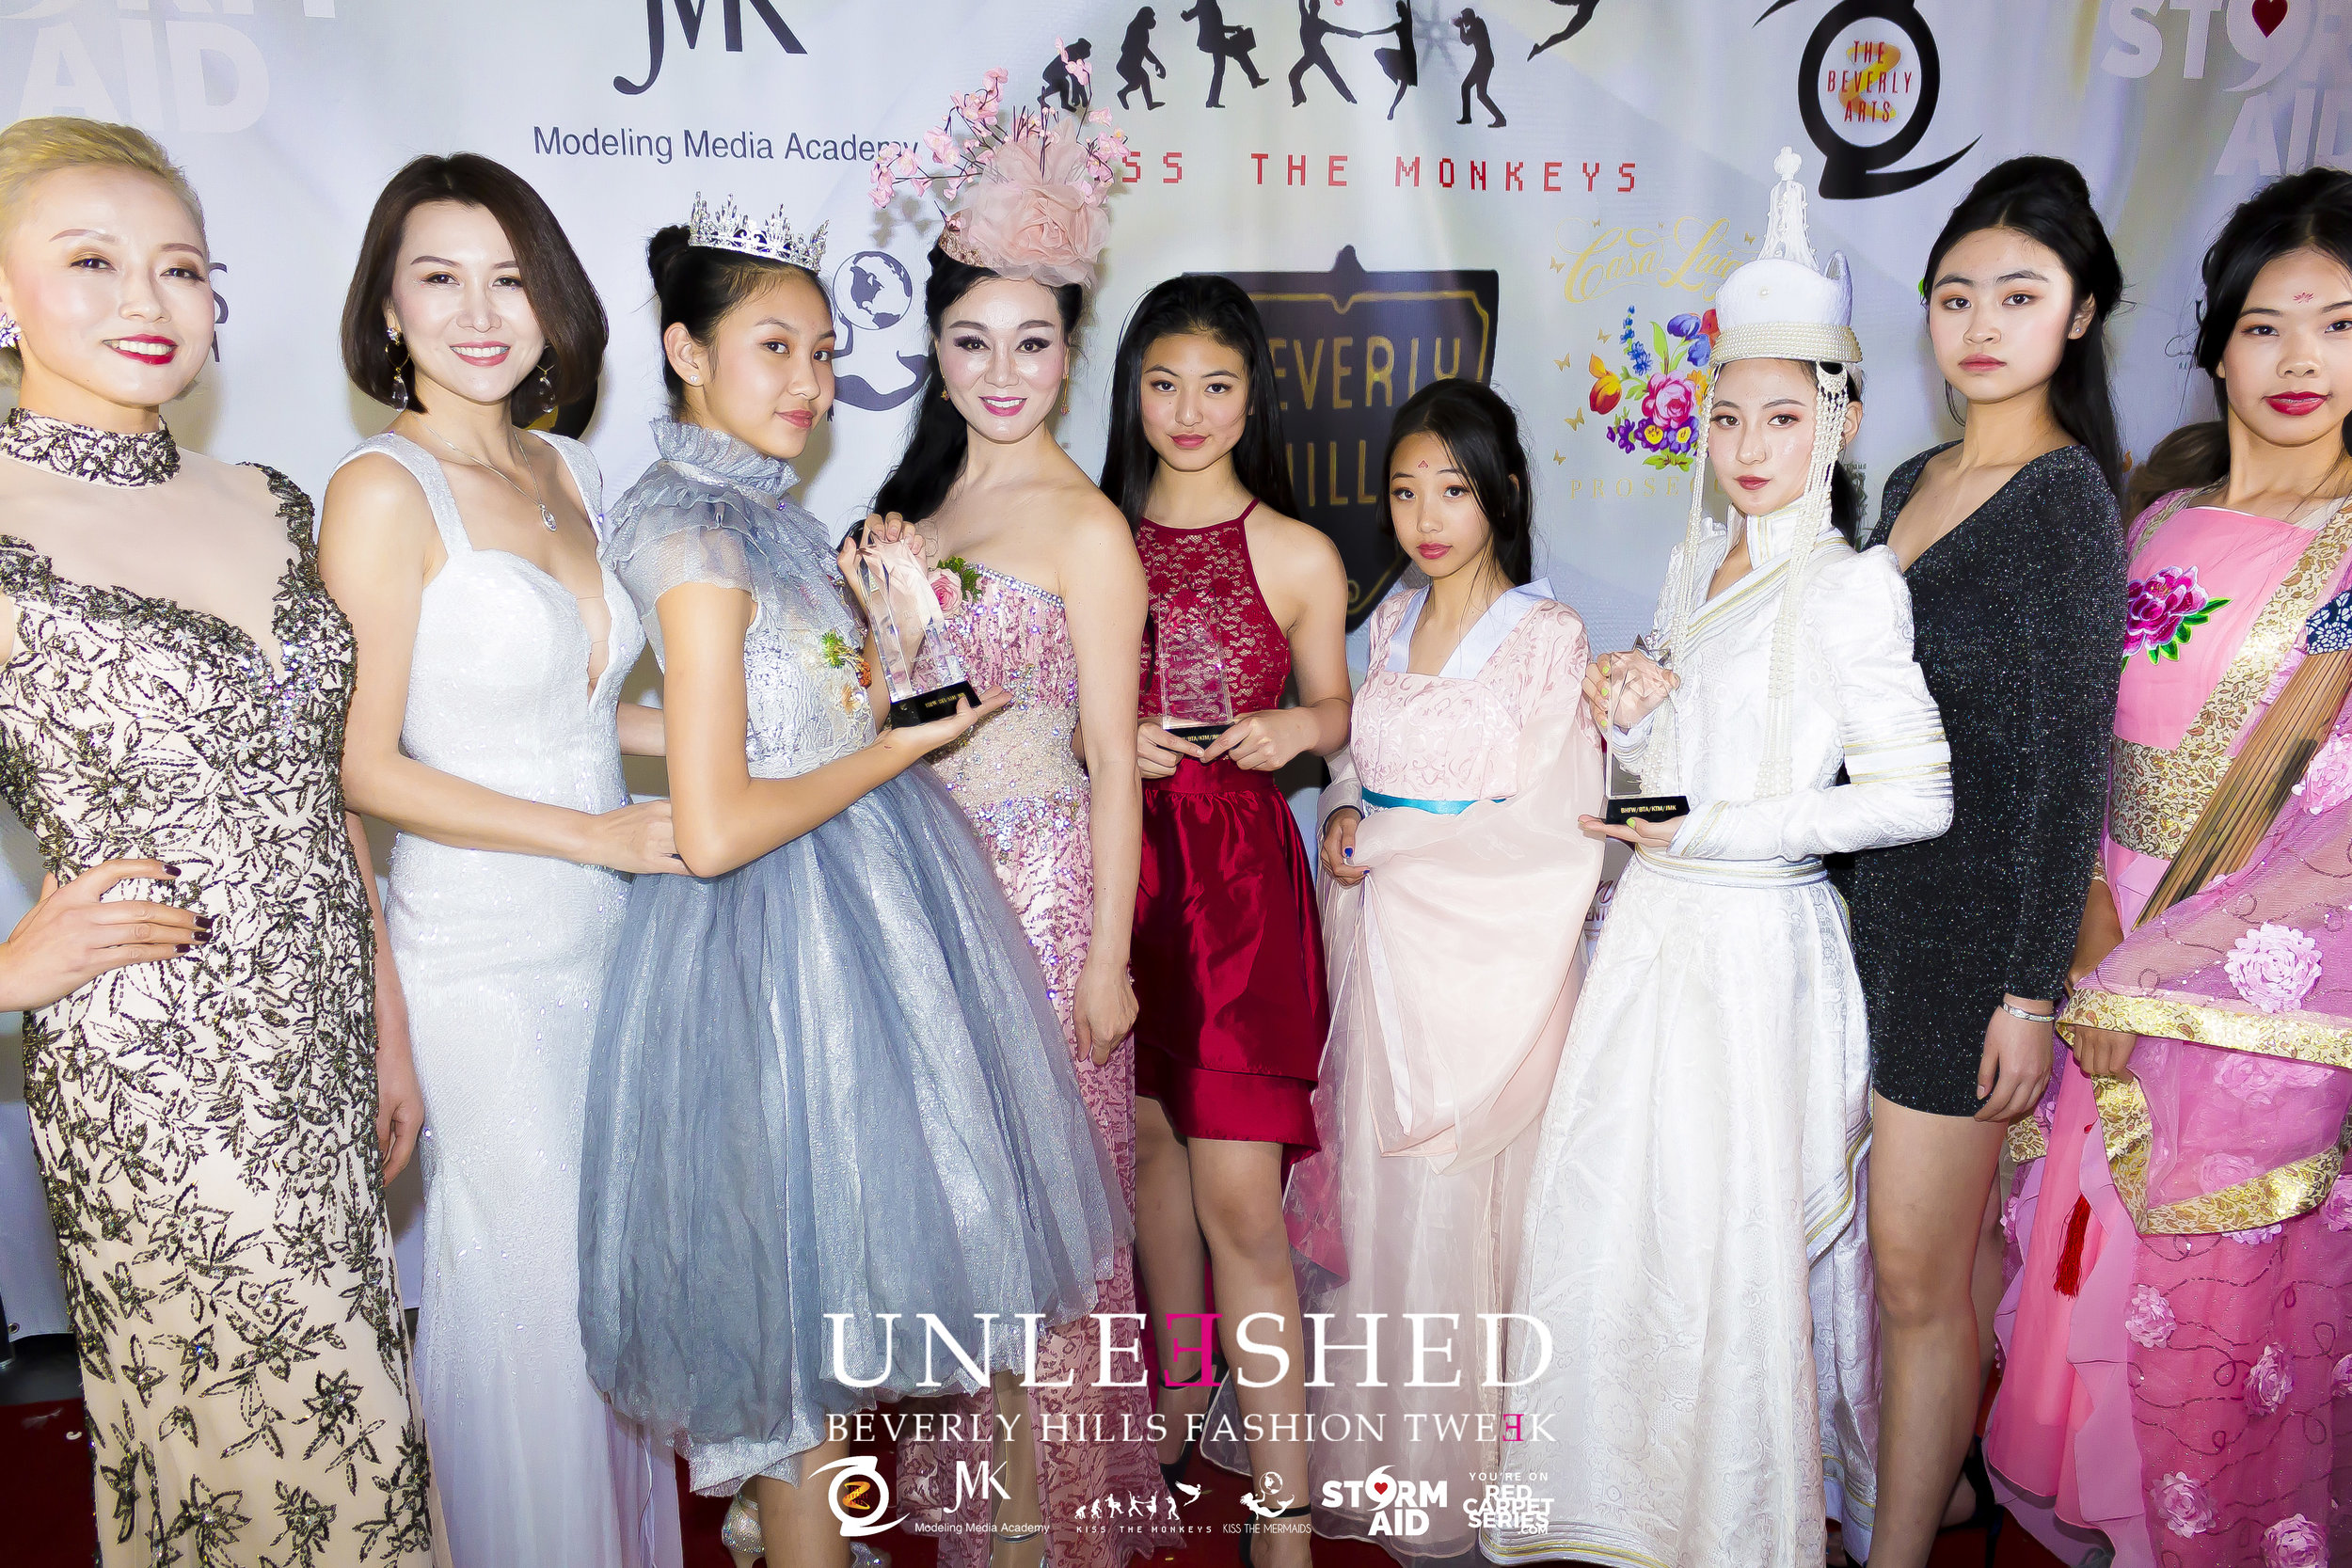 KTM - BH Fashion Tweek + Al's Bday_59 (2).jpg